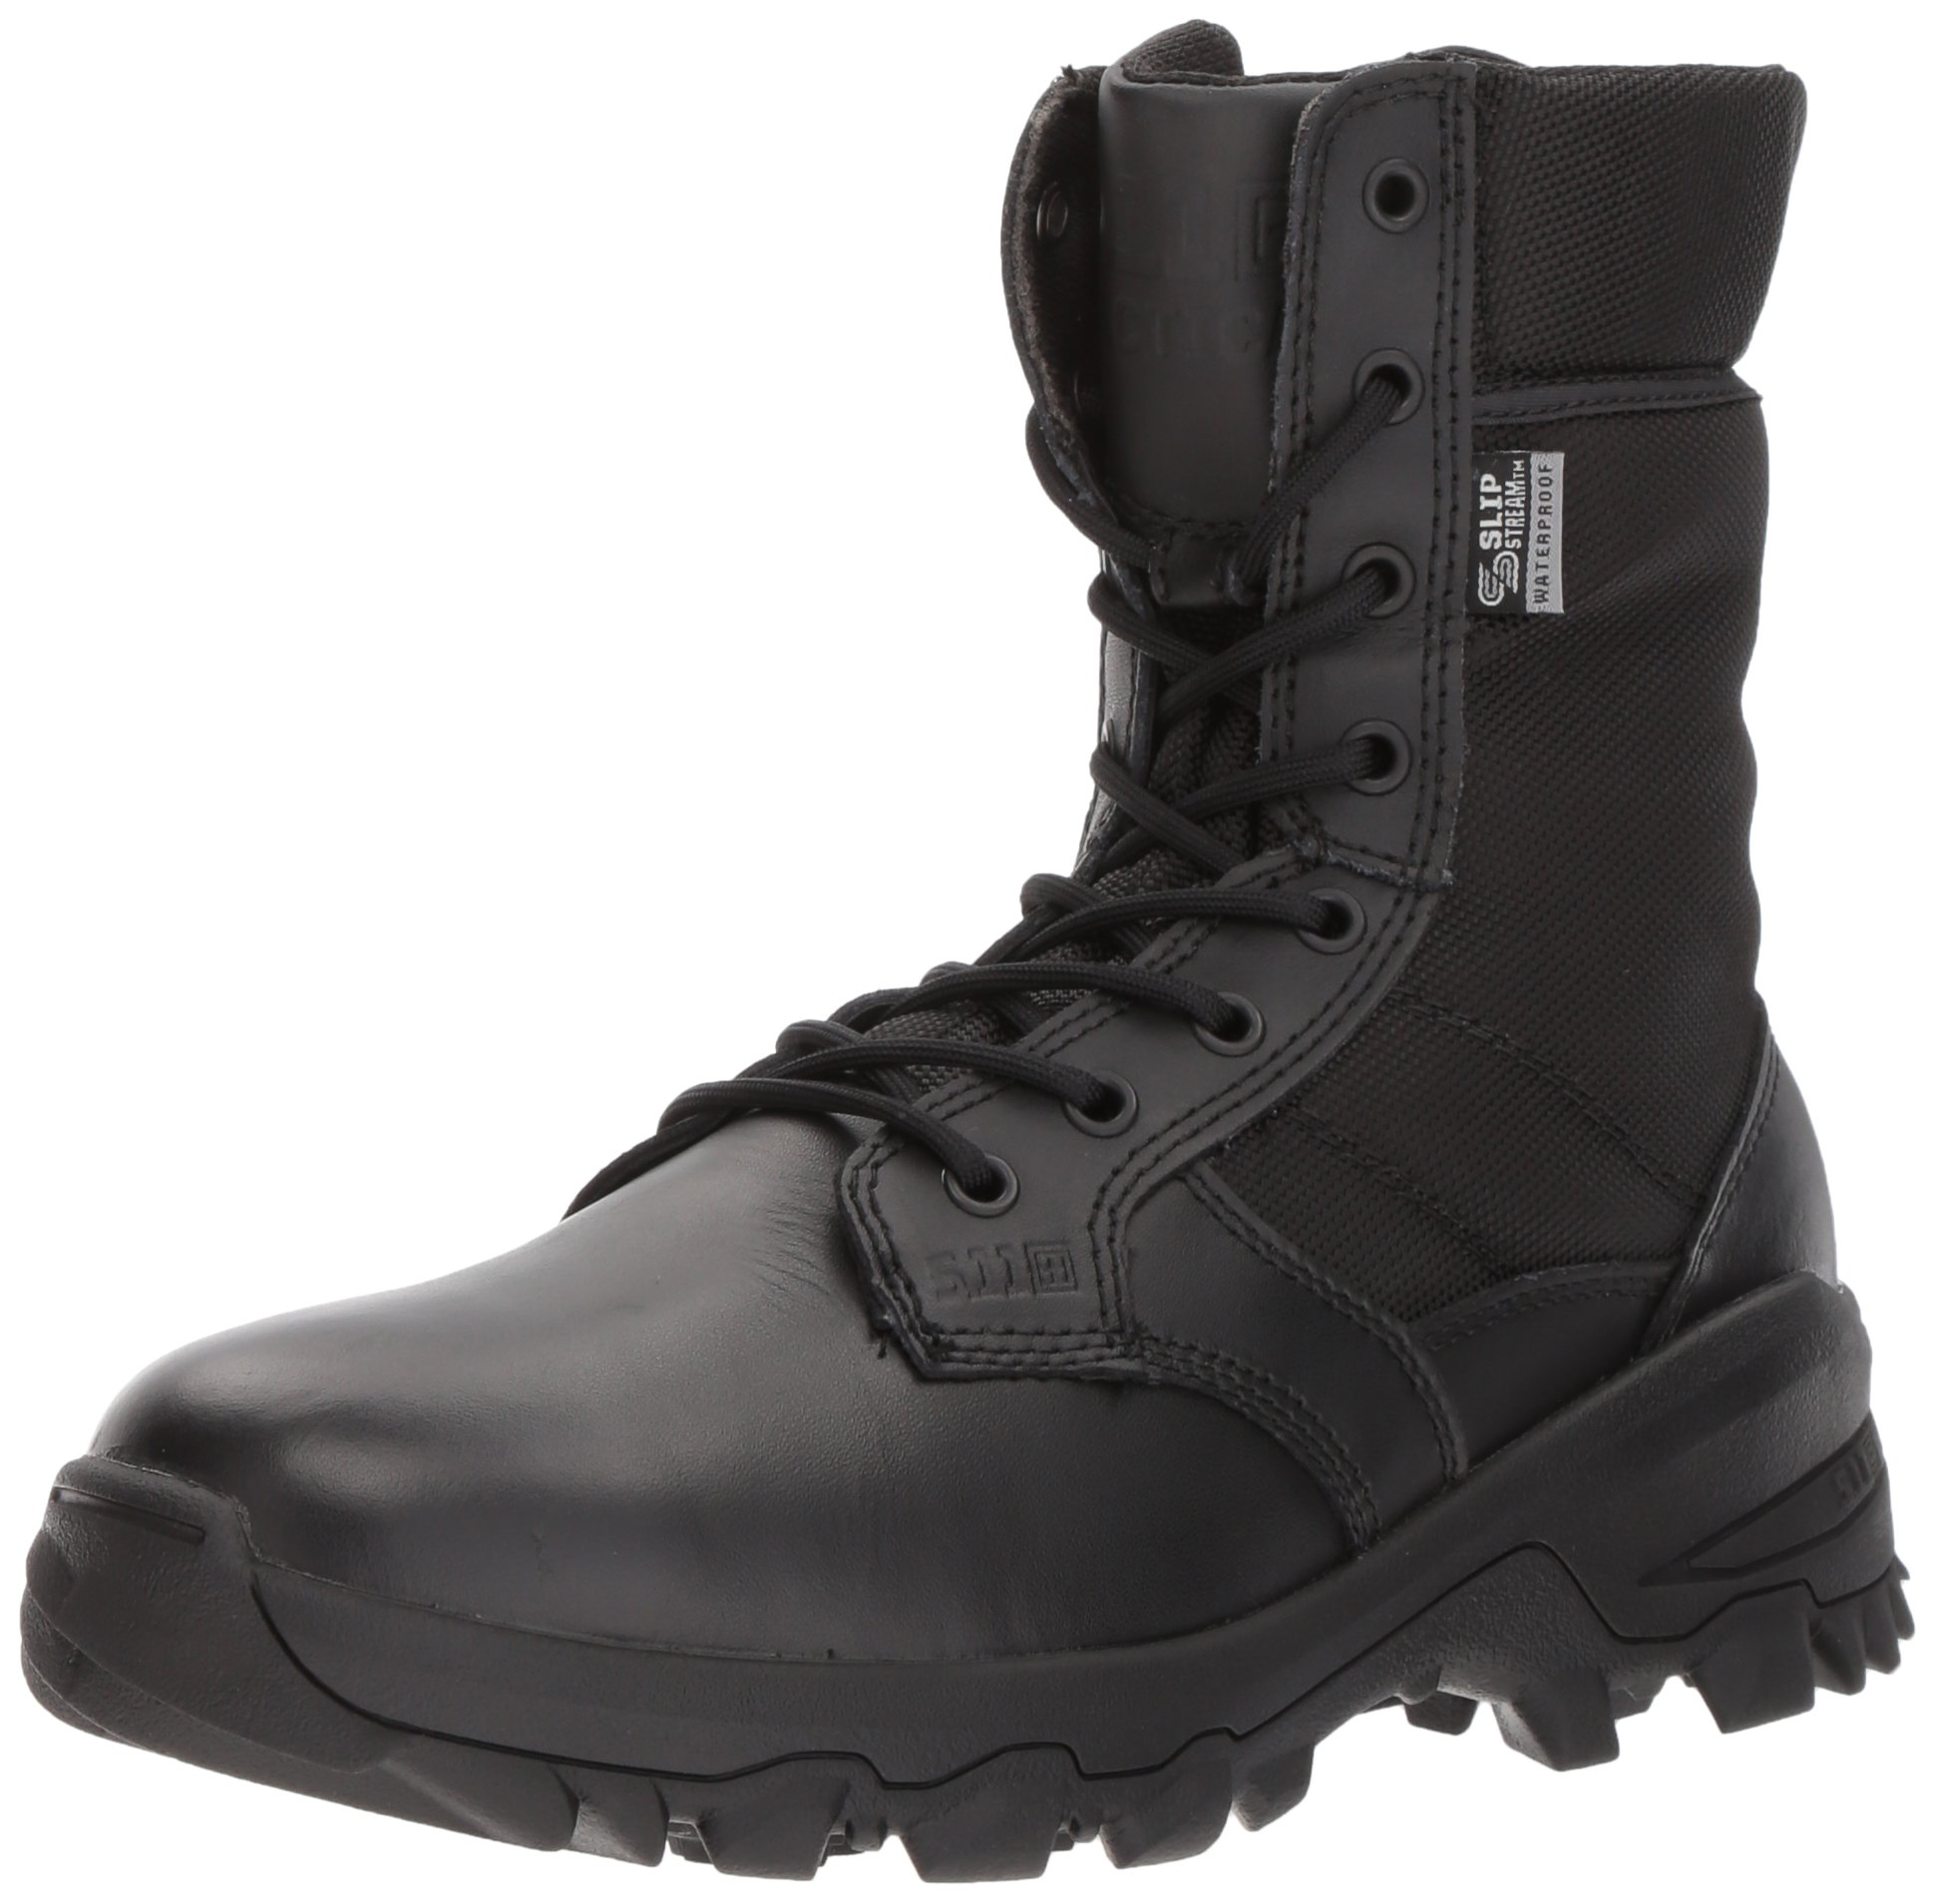 5.11 Men's Speed 3.0 Waterproof Boot Fire and Safety, Black, 14 Wide US